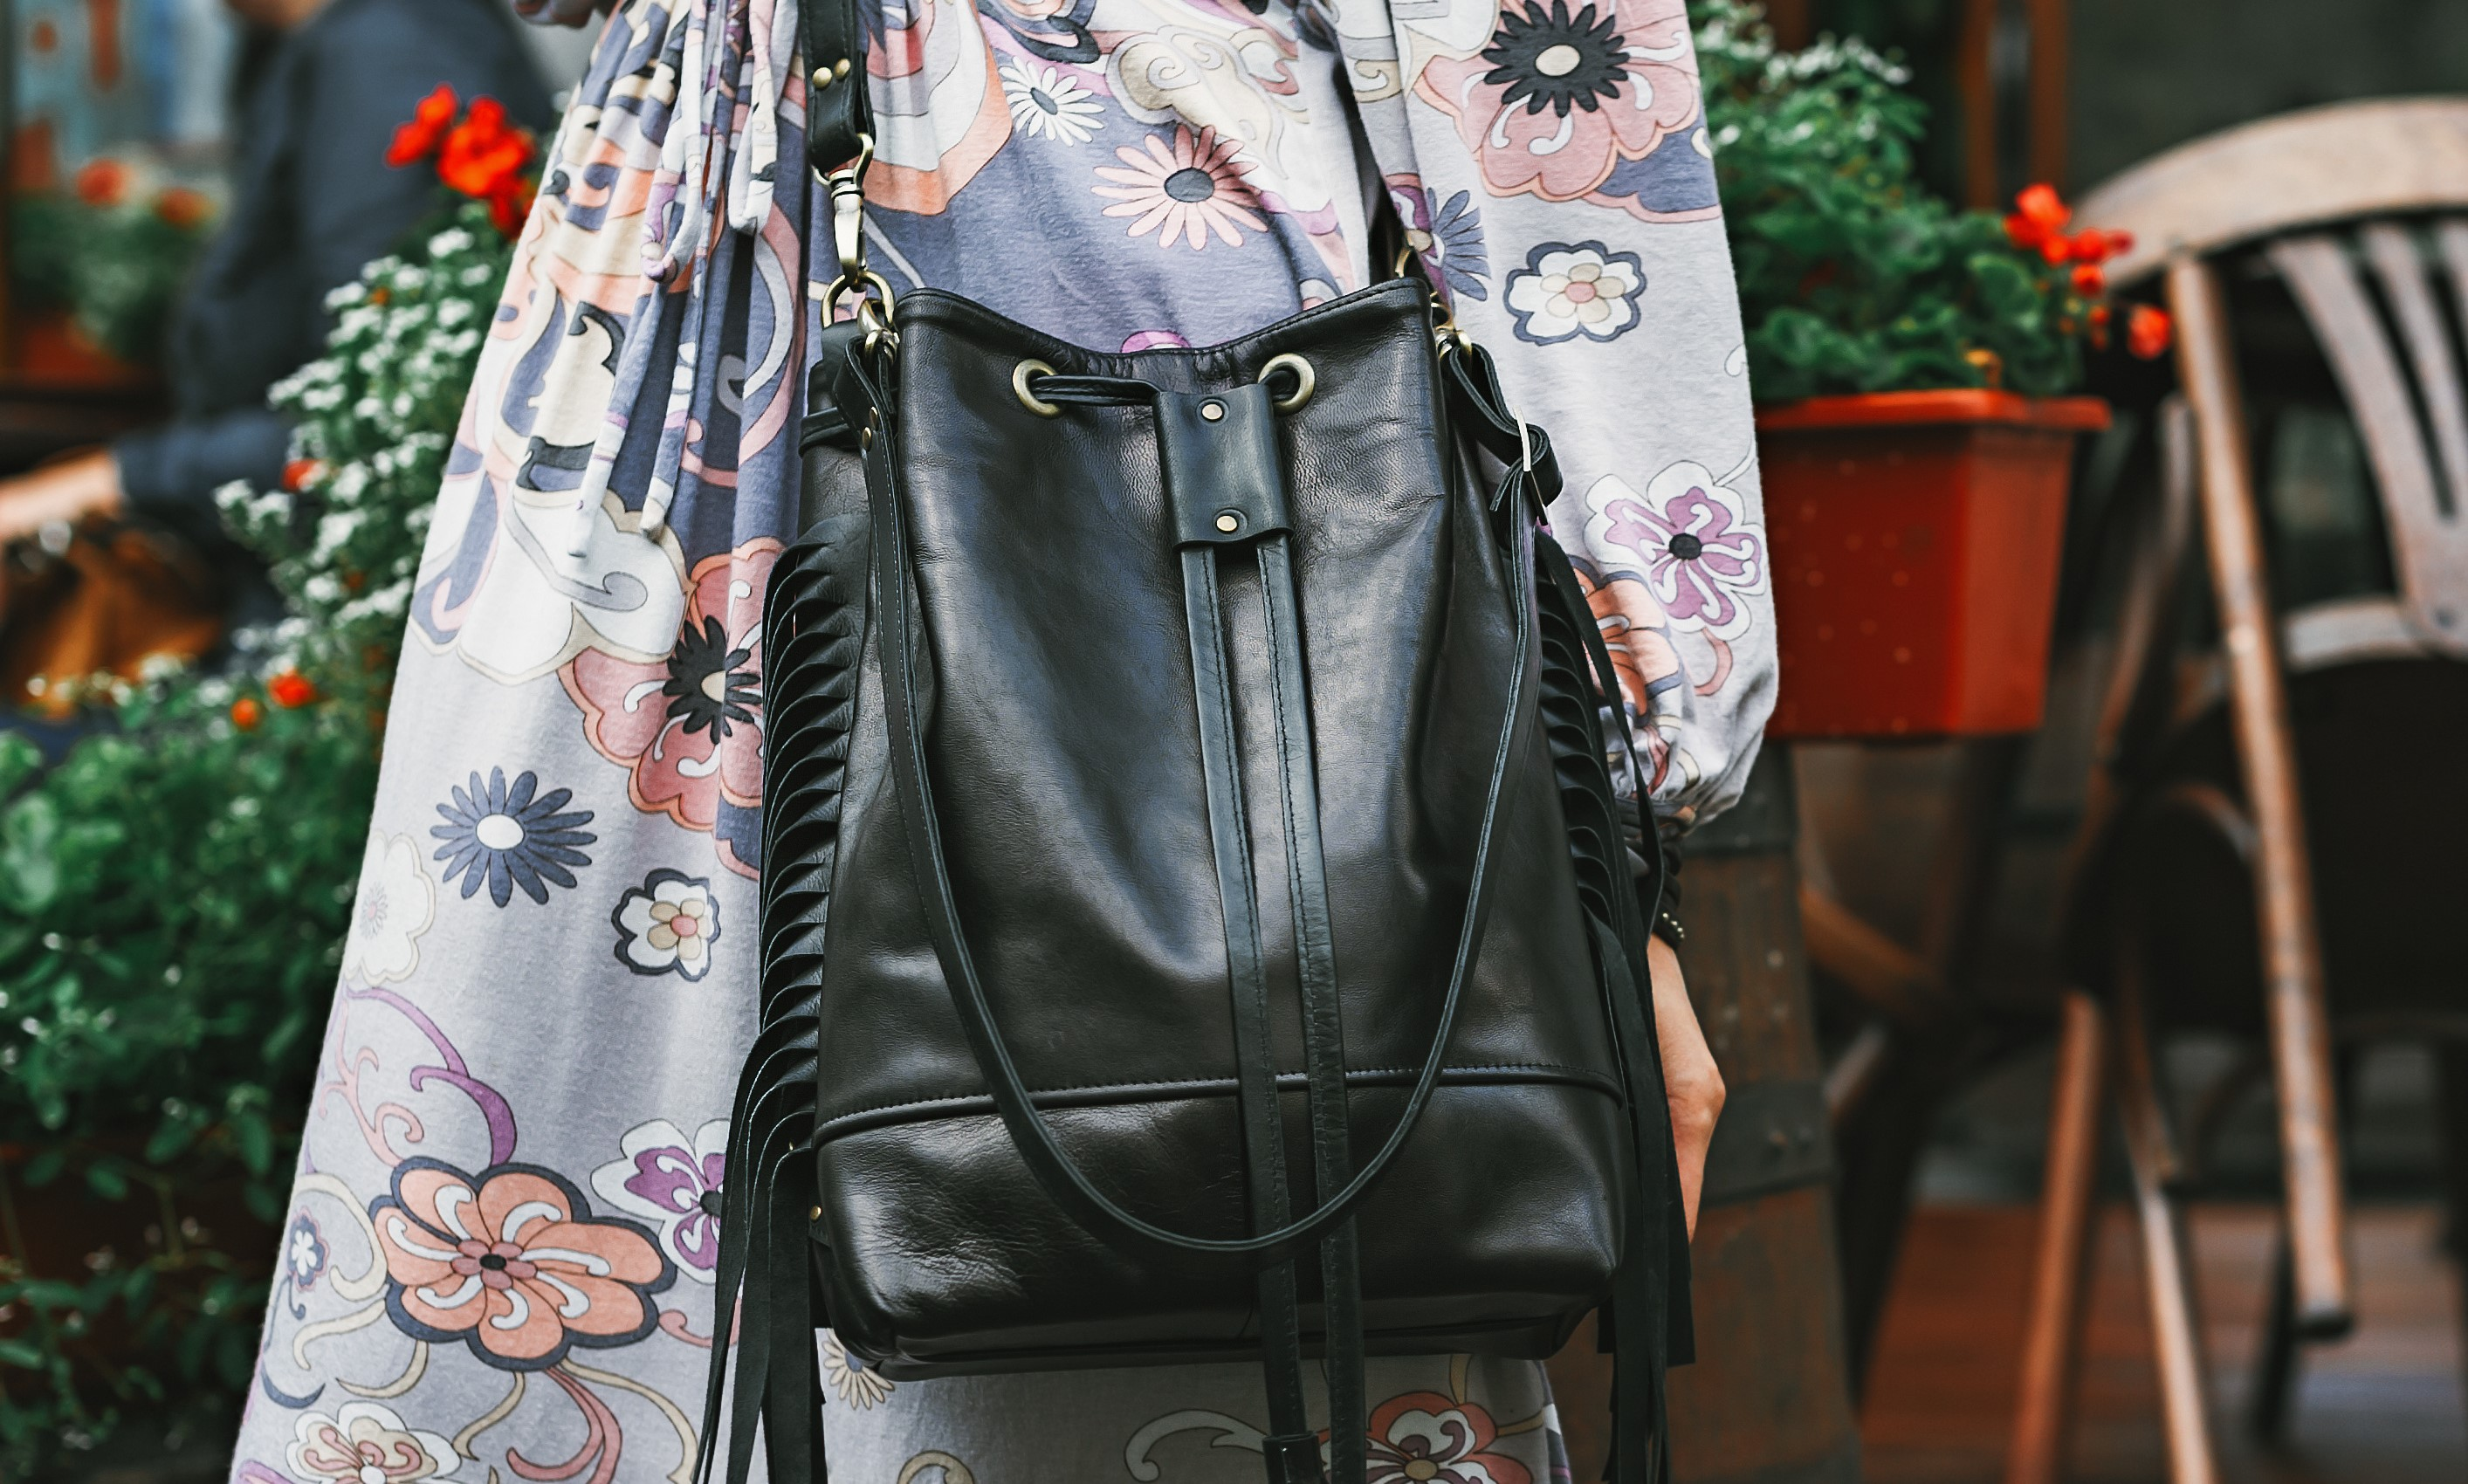 Chic Bucket Bags That Hold All of The Essentials Without The Added Bulk